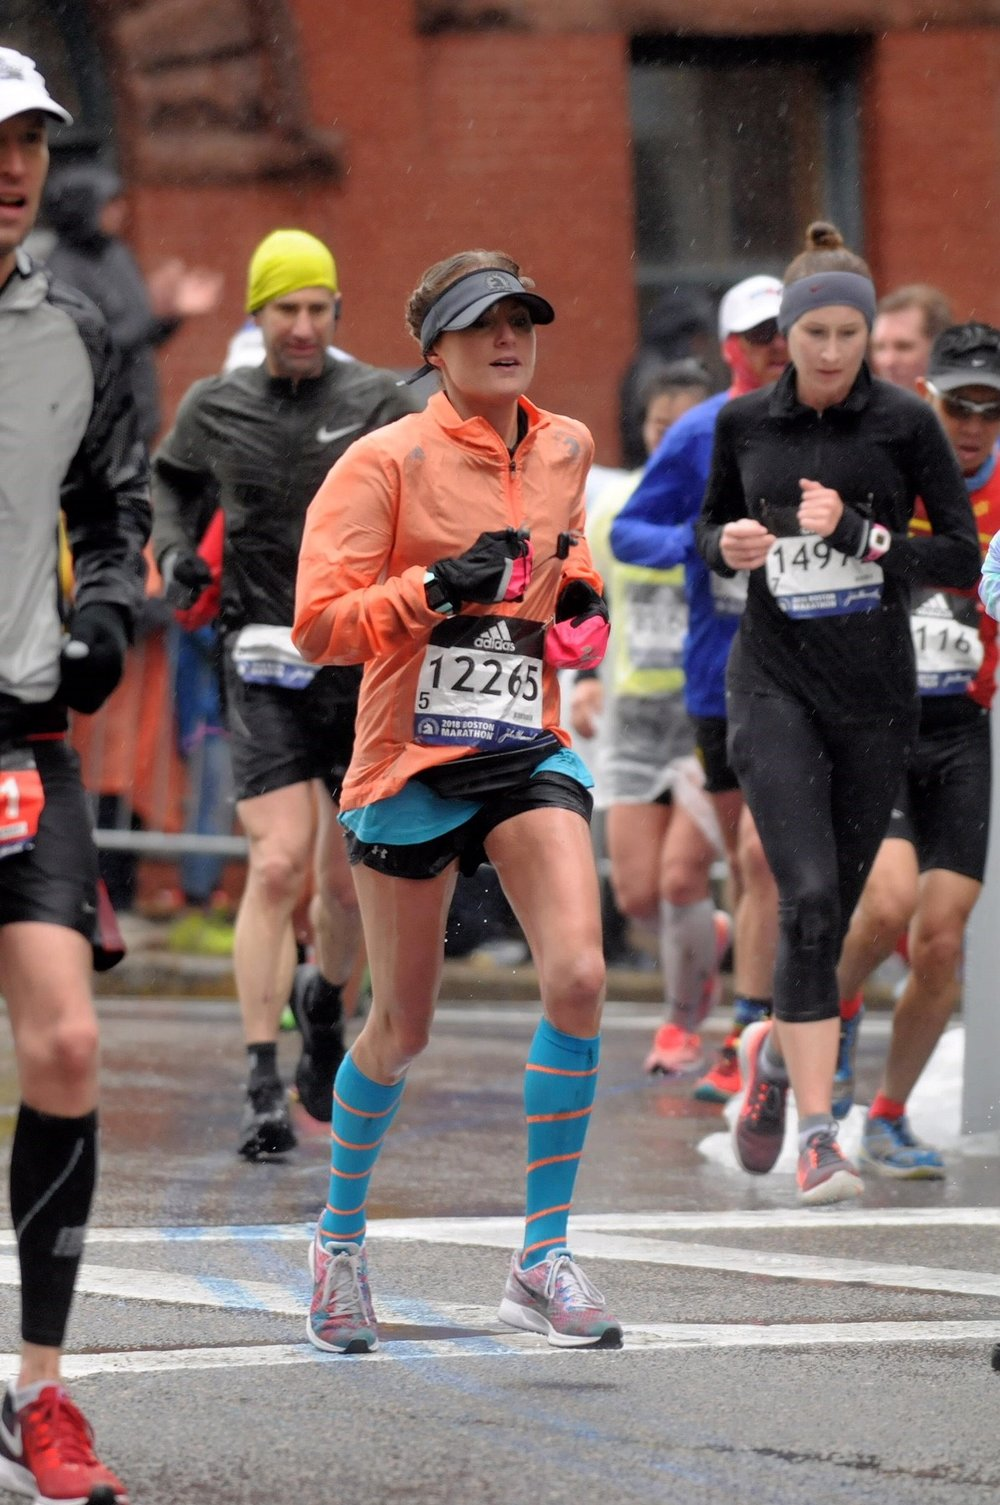 Michelle wraps up her third Boston Marathon in 3:29 in 35 degree weather and 30 mph headwinds. -